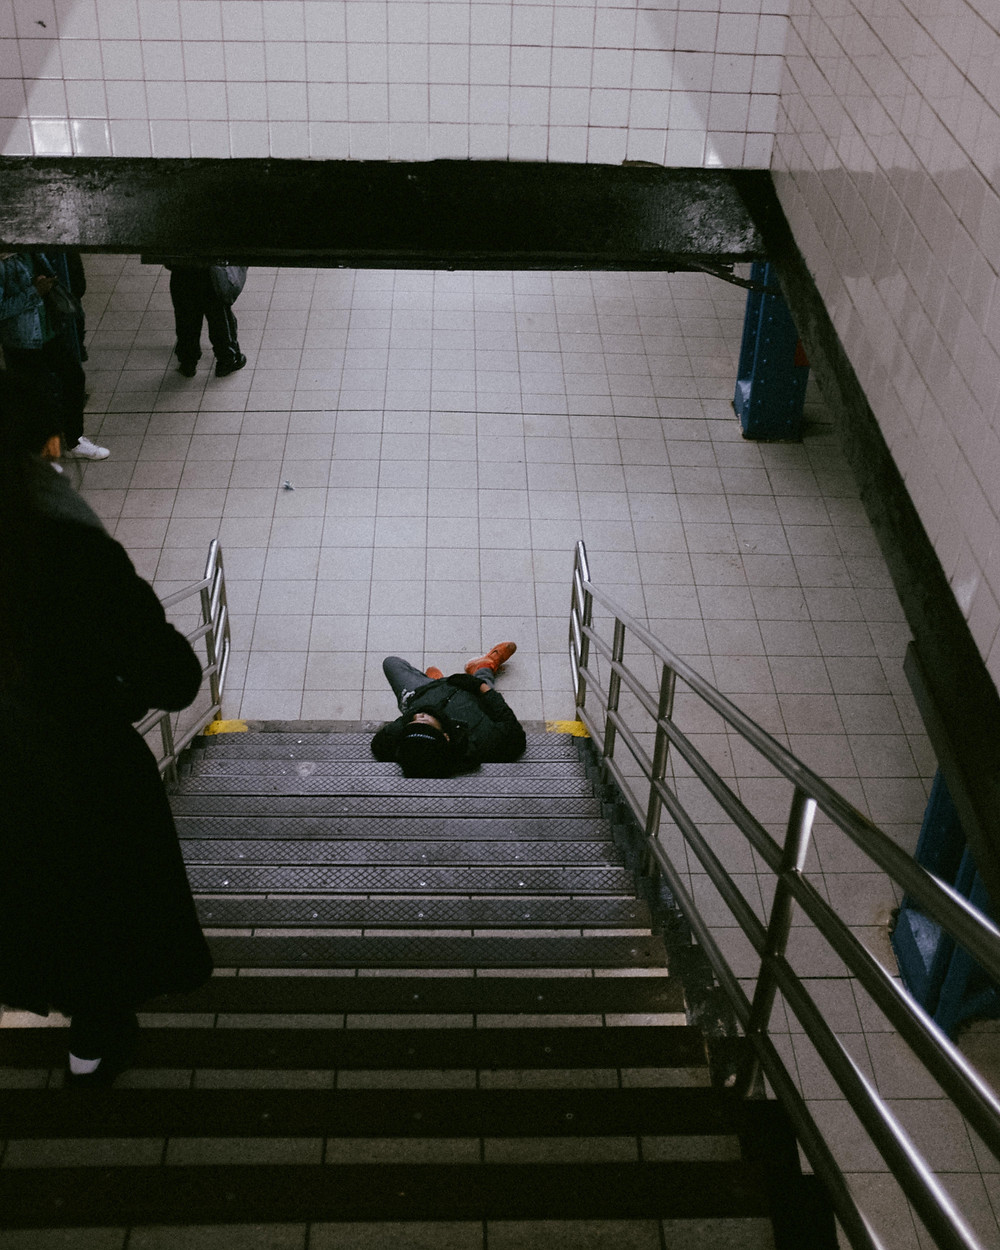 A guy lying on the steps to the subway platform, just waiting for his subway.